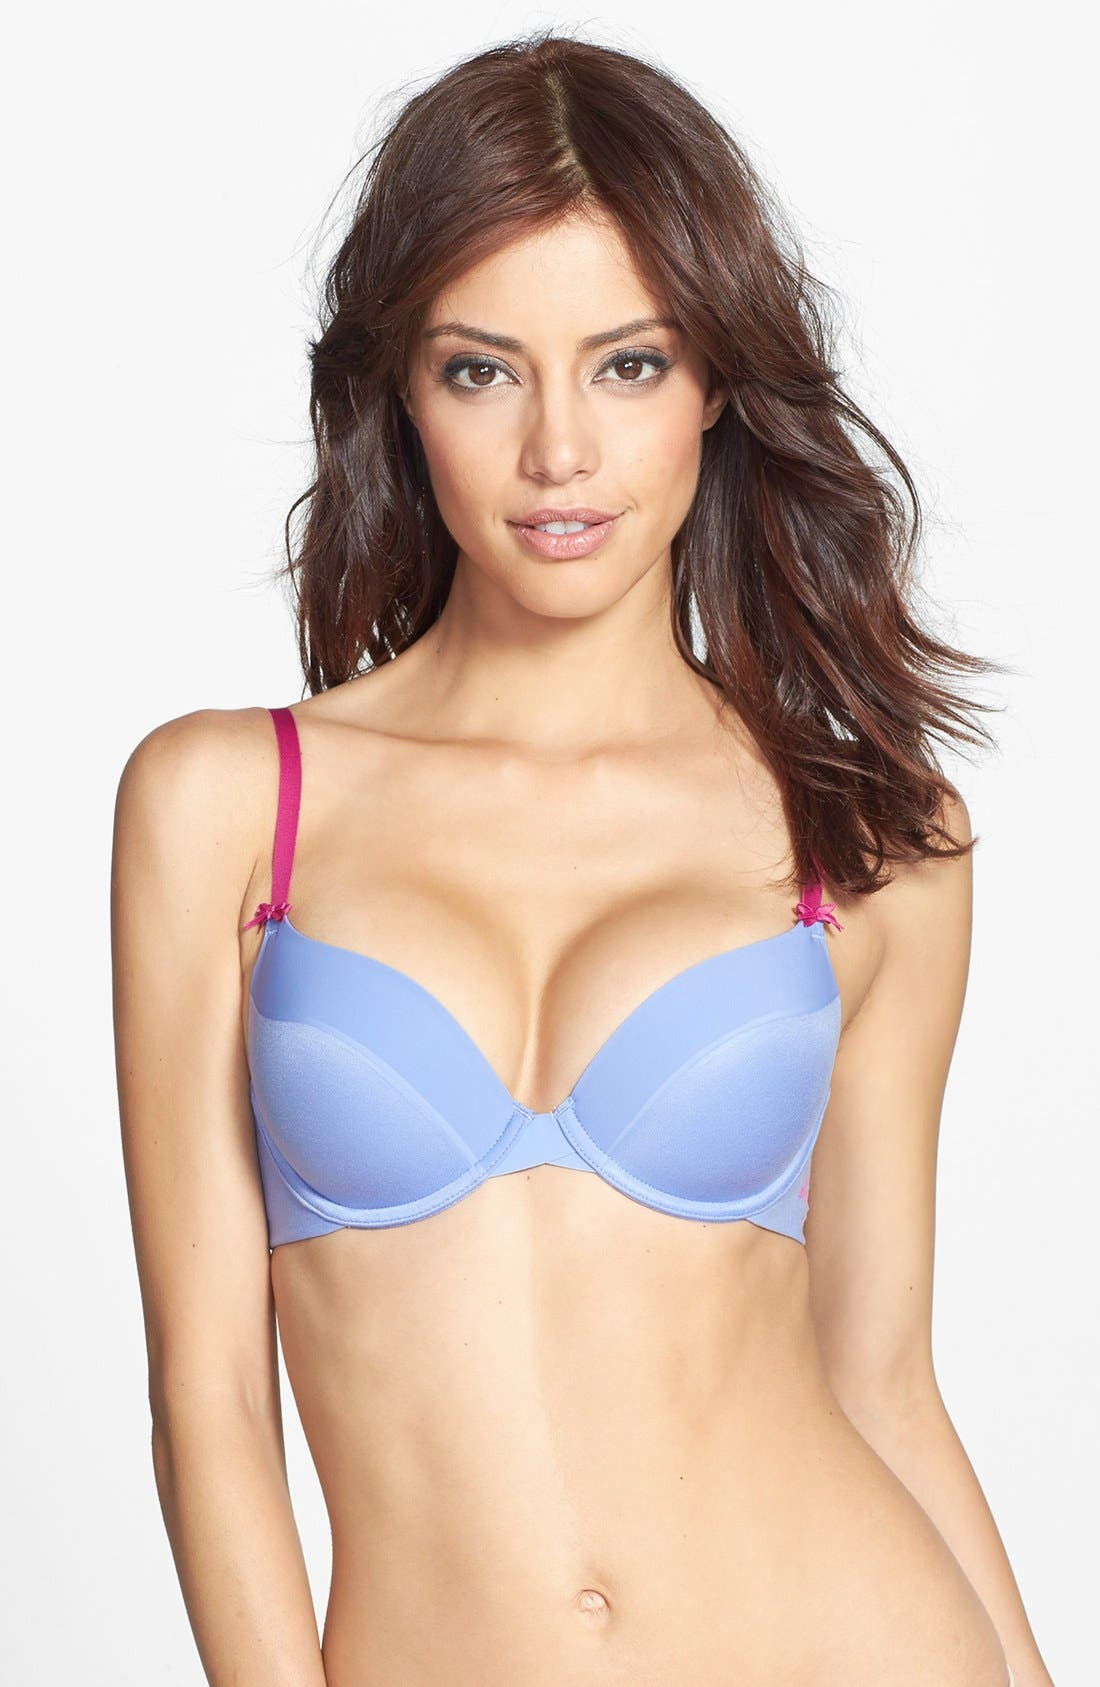 Alternate Image 1 Selected - DKNY 'Fusion' Underwire T-Shirt Bra